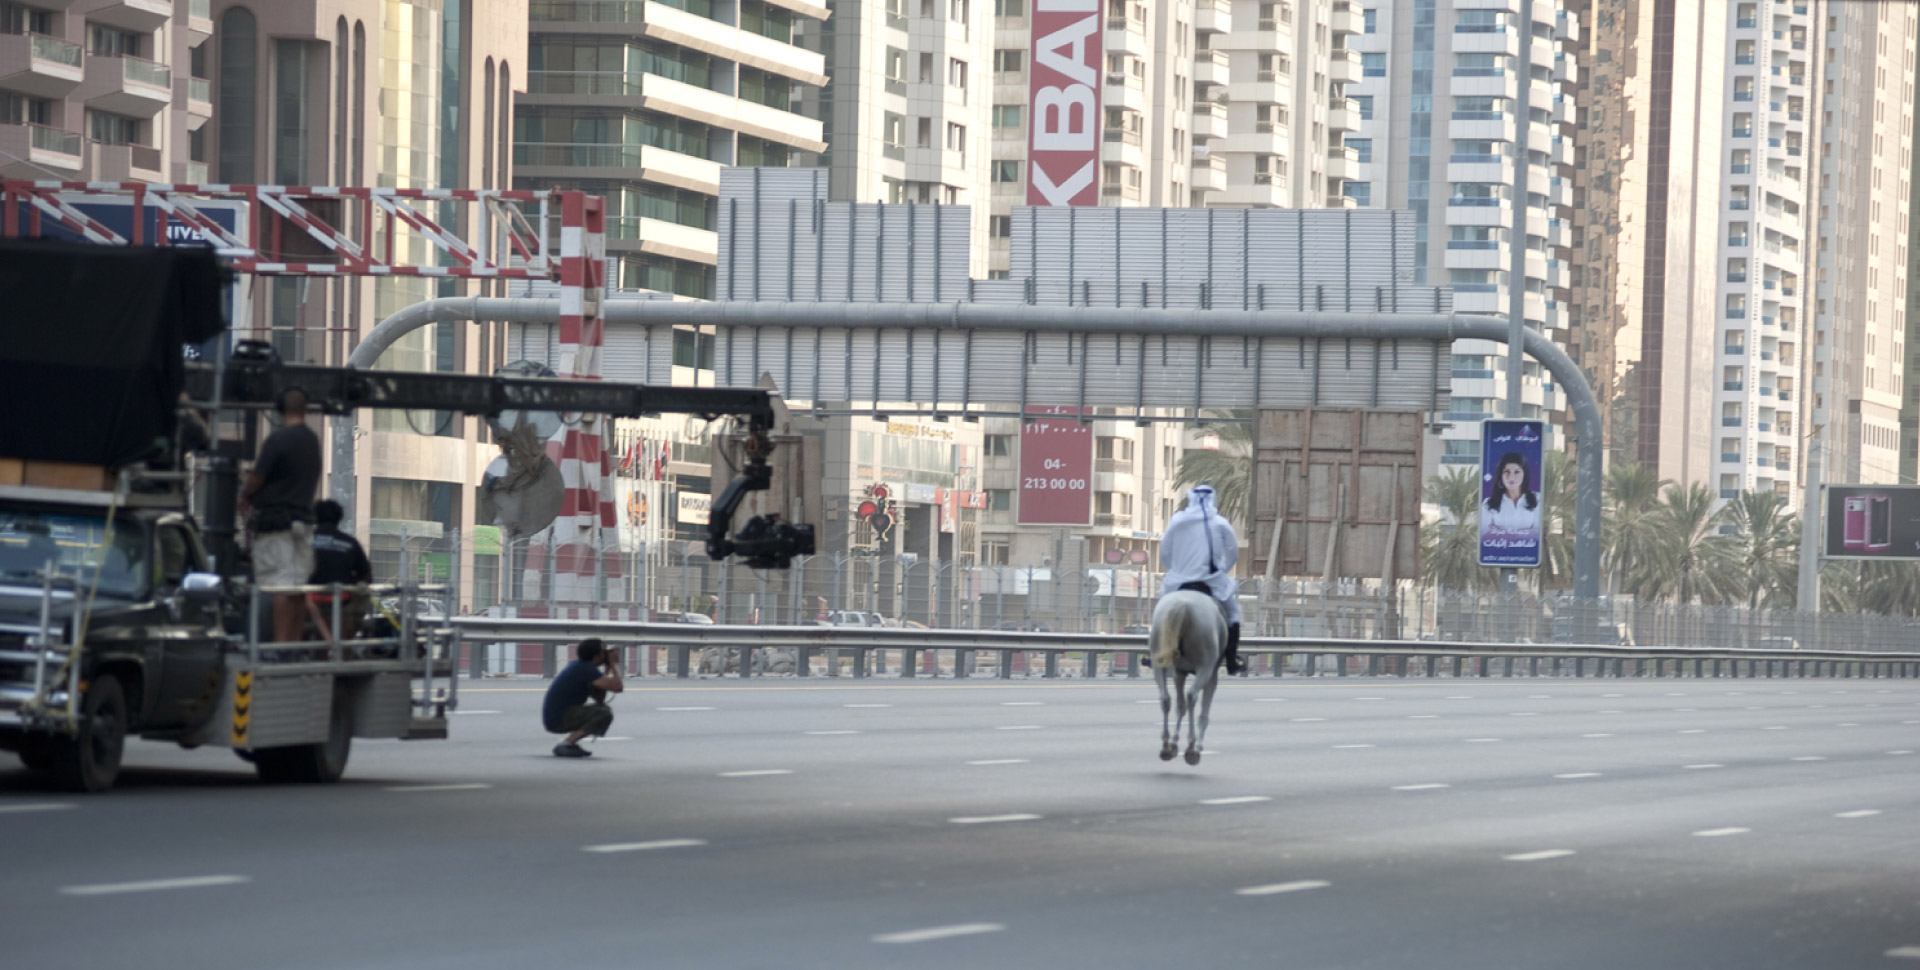 Russian Arm in Action in the streets of Dubai during a shoot-Crew-Equipment